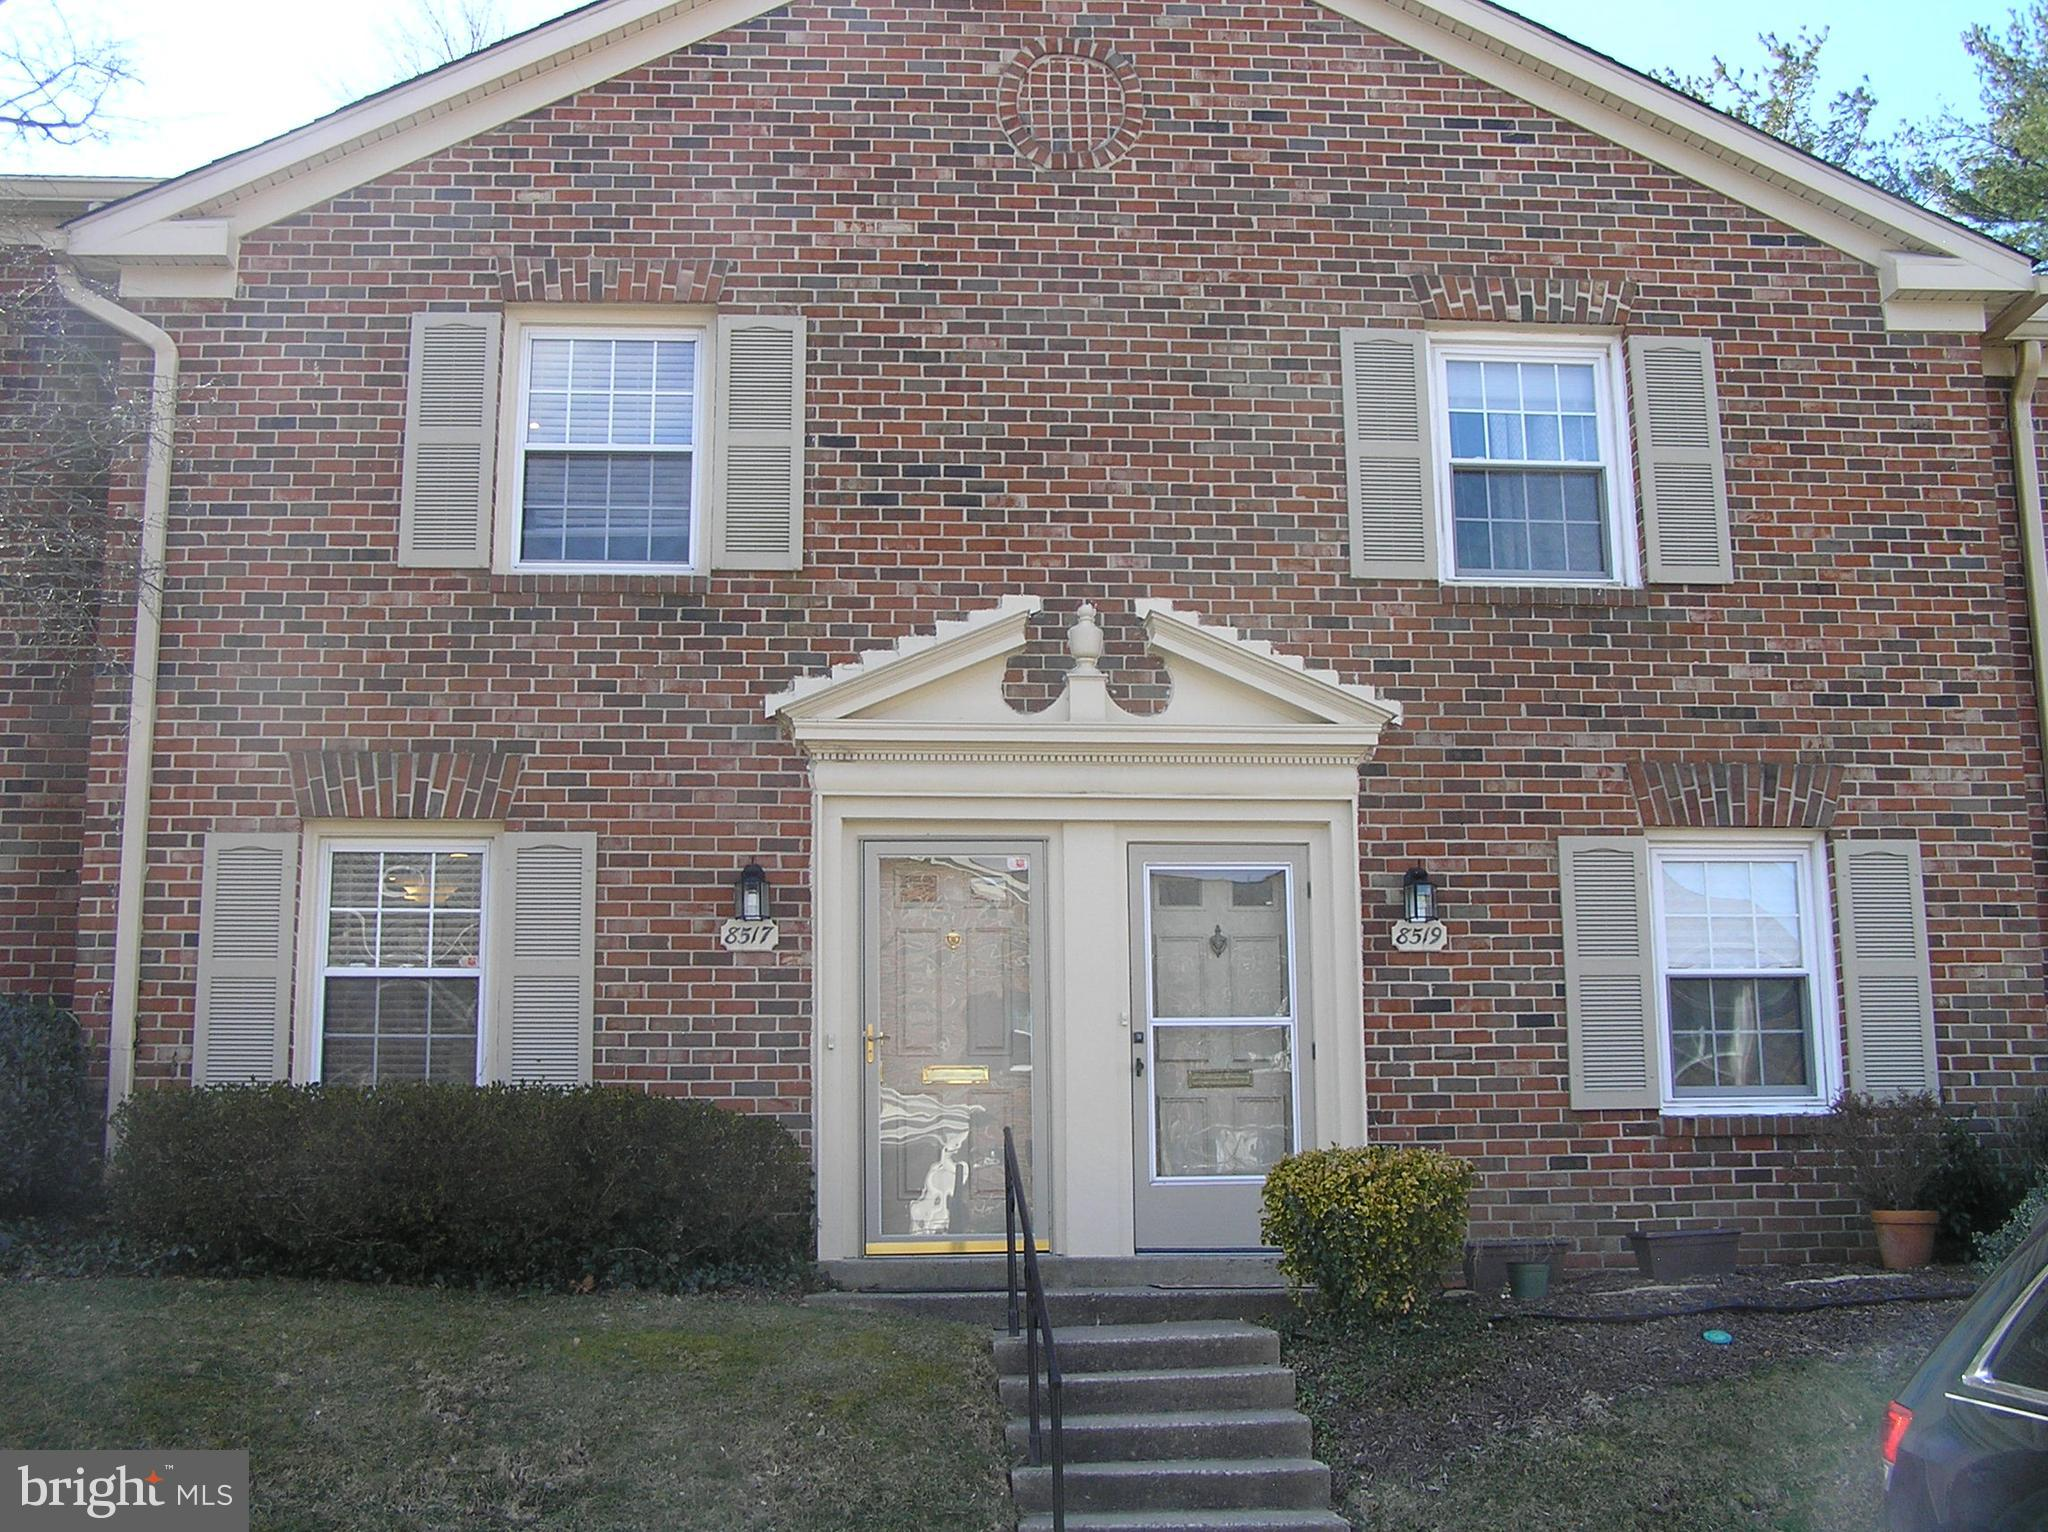 Open House on March 17 Cancelled! New Carpet and Fresh Paint In This Spacious & Move In Ready 2 Level 2 Bedroom Townhouse Style Condo In The Heart Of West Springfield Hardwood Flooring Throughout. Just Installed New Medicine Cabinet, Mirror, Lighting Fixture & Faucets. Gas Heat and Hot Water, HVAC and Water Heater Installed 2014, Dishwasher 2015, Eat In Kitchen With Granite Countertops and Upgraded Cabinets, Washer/Dryer on Upper Bedroom Level Installed 2015, Living Room Walks Out To Fenced Patio, Ceiling Fans In Each Bedroom. Condo Fee Includes Gas, Water, Sewer, & Trash; Community Amenities Include Pools and Club House. Close To Transportation, Shopping, Schools, Restaurants, & Recreational Activities.